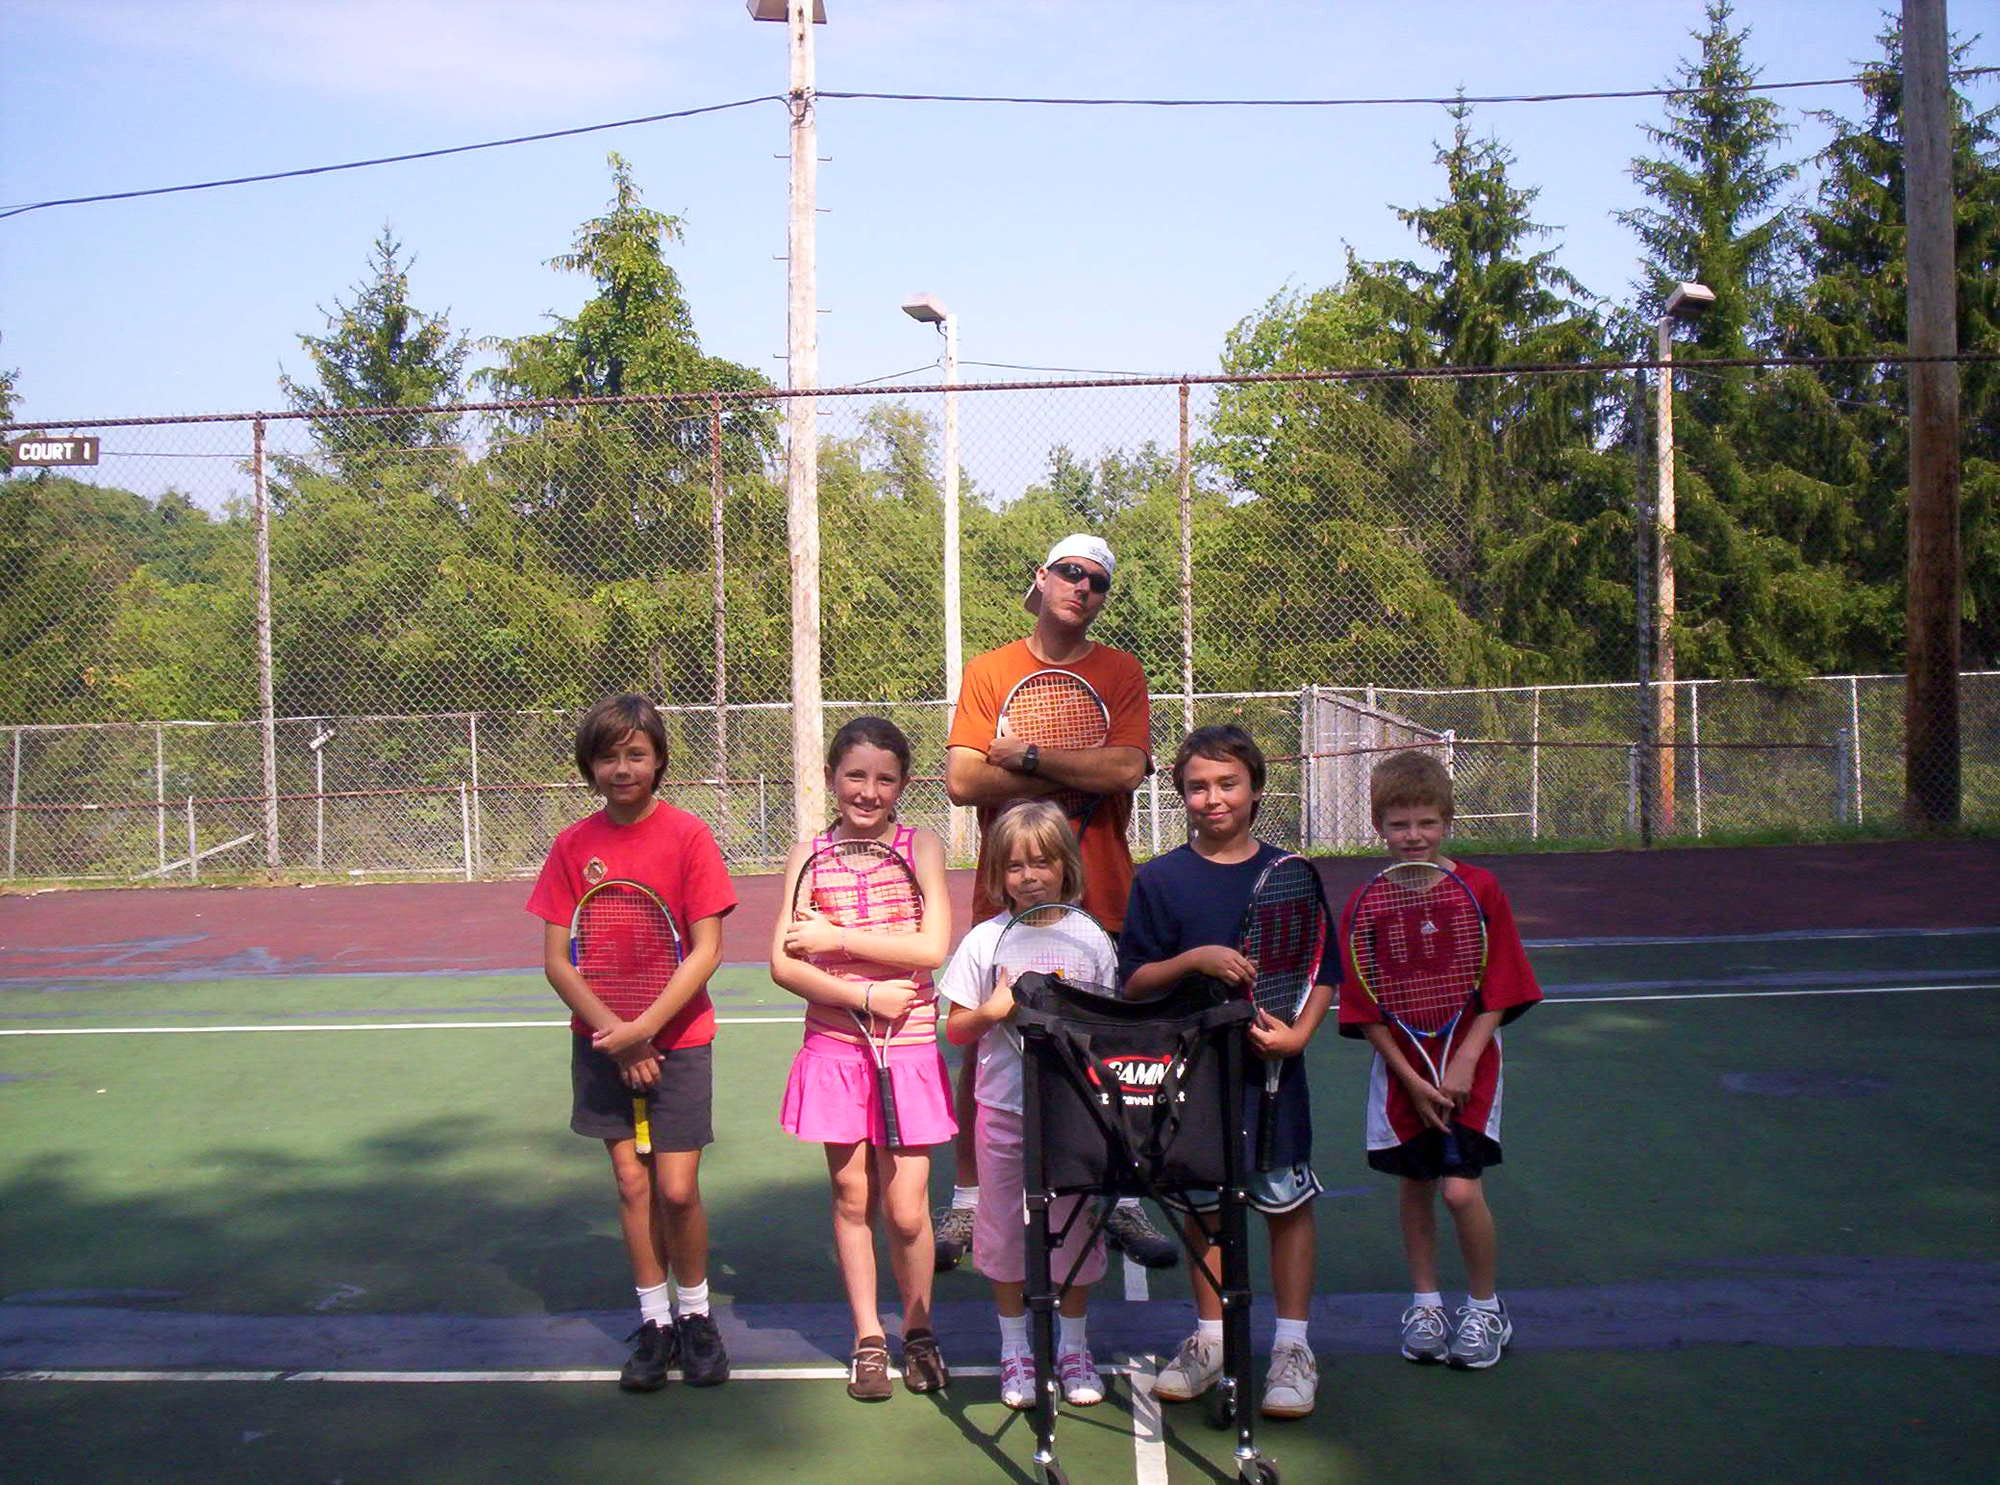 David J. teaches tennis lessons in Imperial, PA